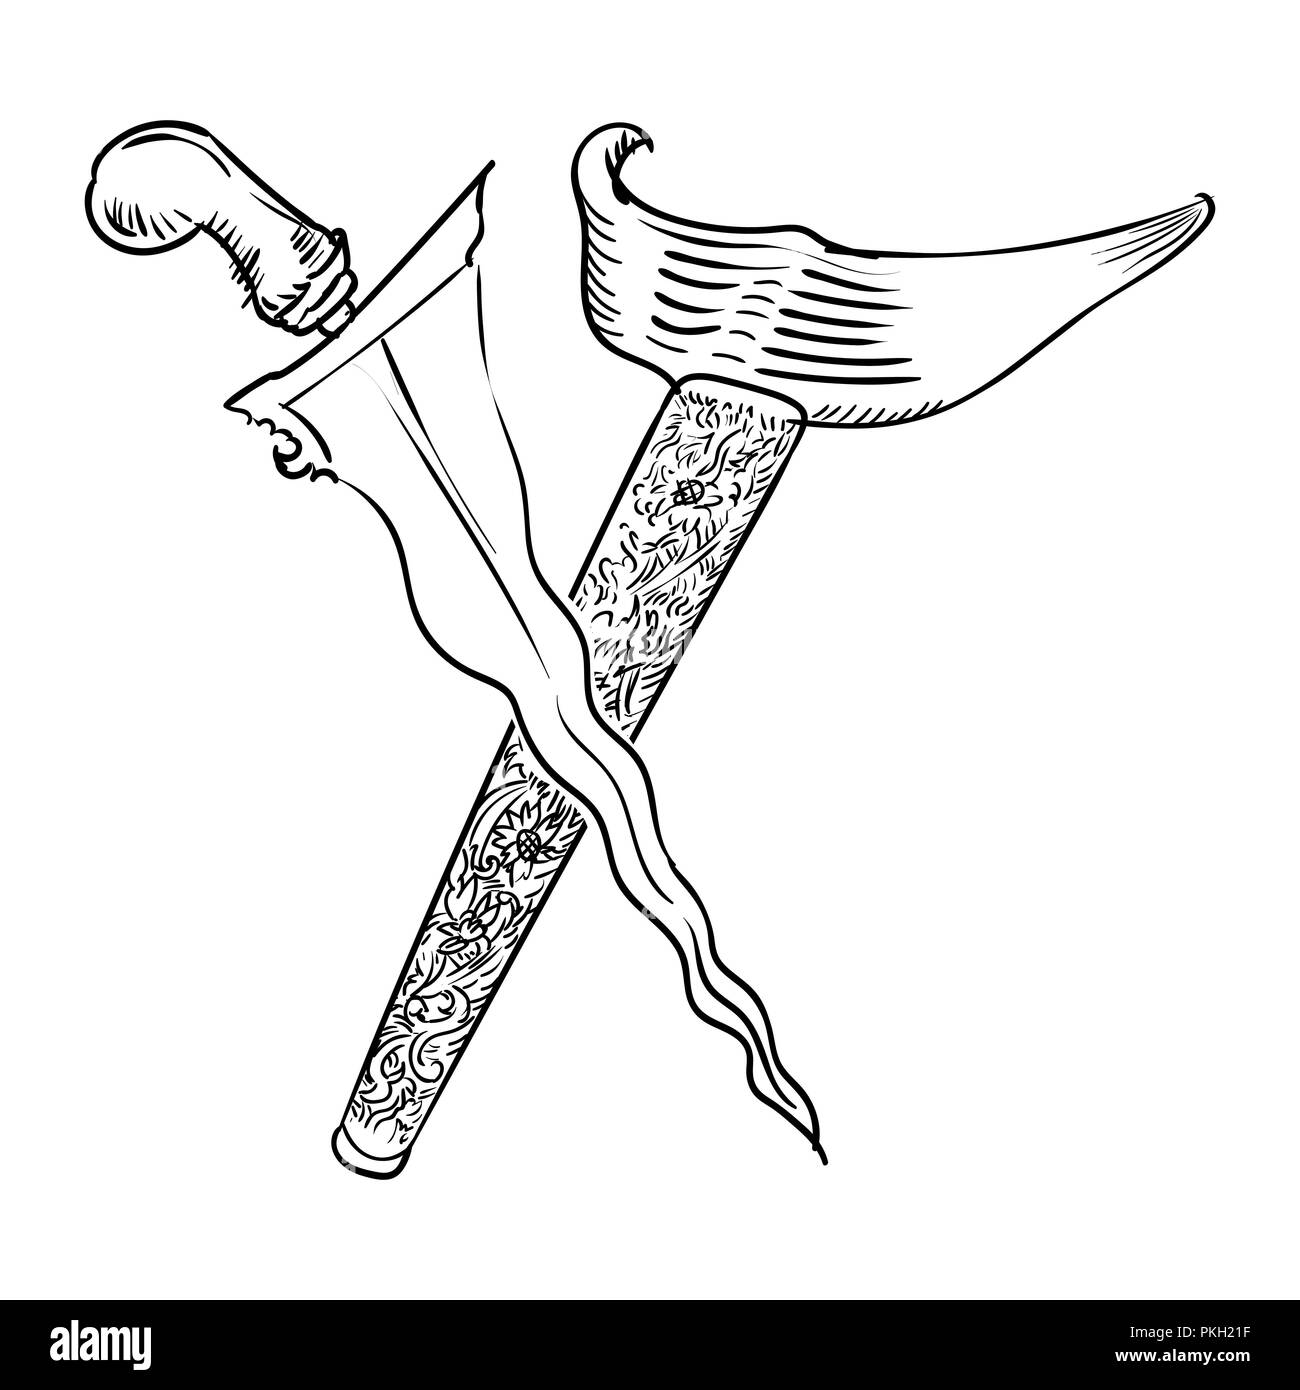 Malay Dagger or Keris Hand drawn for coloring book, isolated on white background - Vector Illustration. - Stock Vector